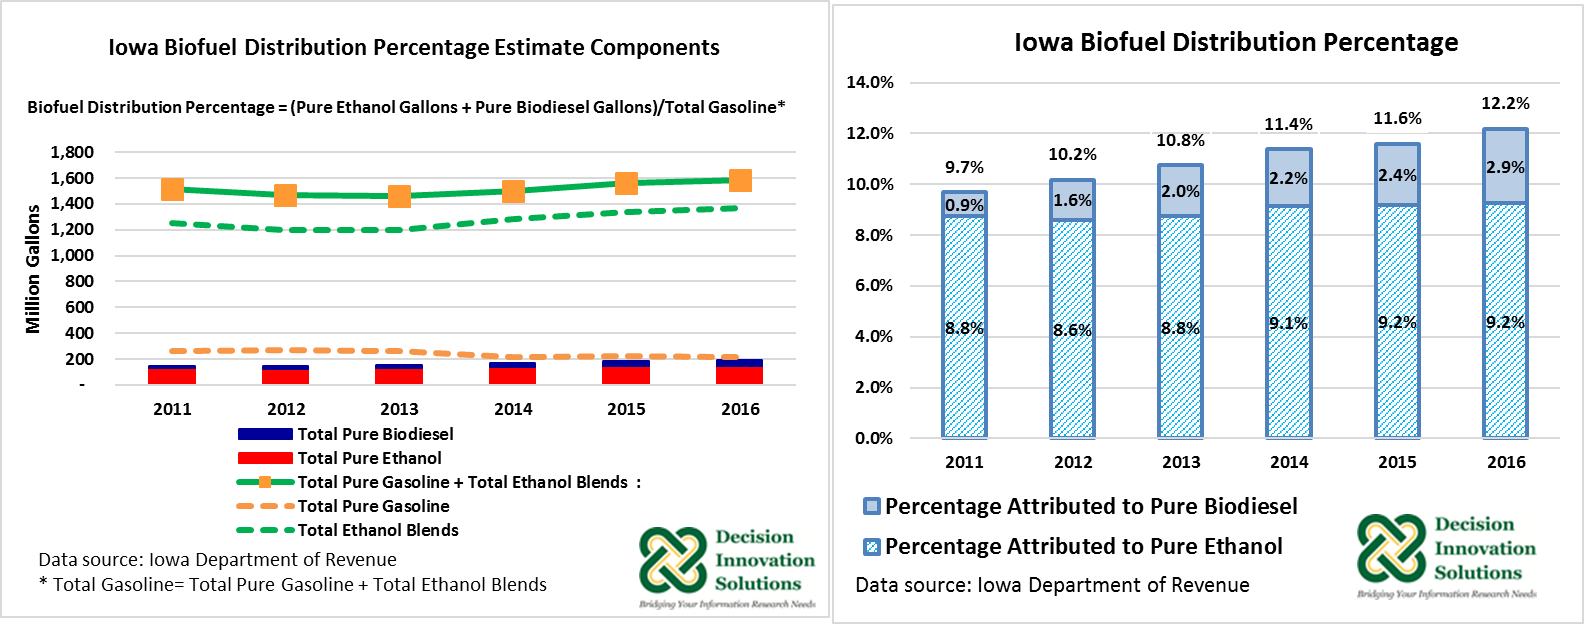 Graphs of Iowa Biofuel Distribution Percentage Estimate Components and Iowa Biofuel Distribution Percentage